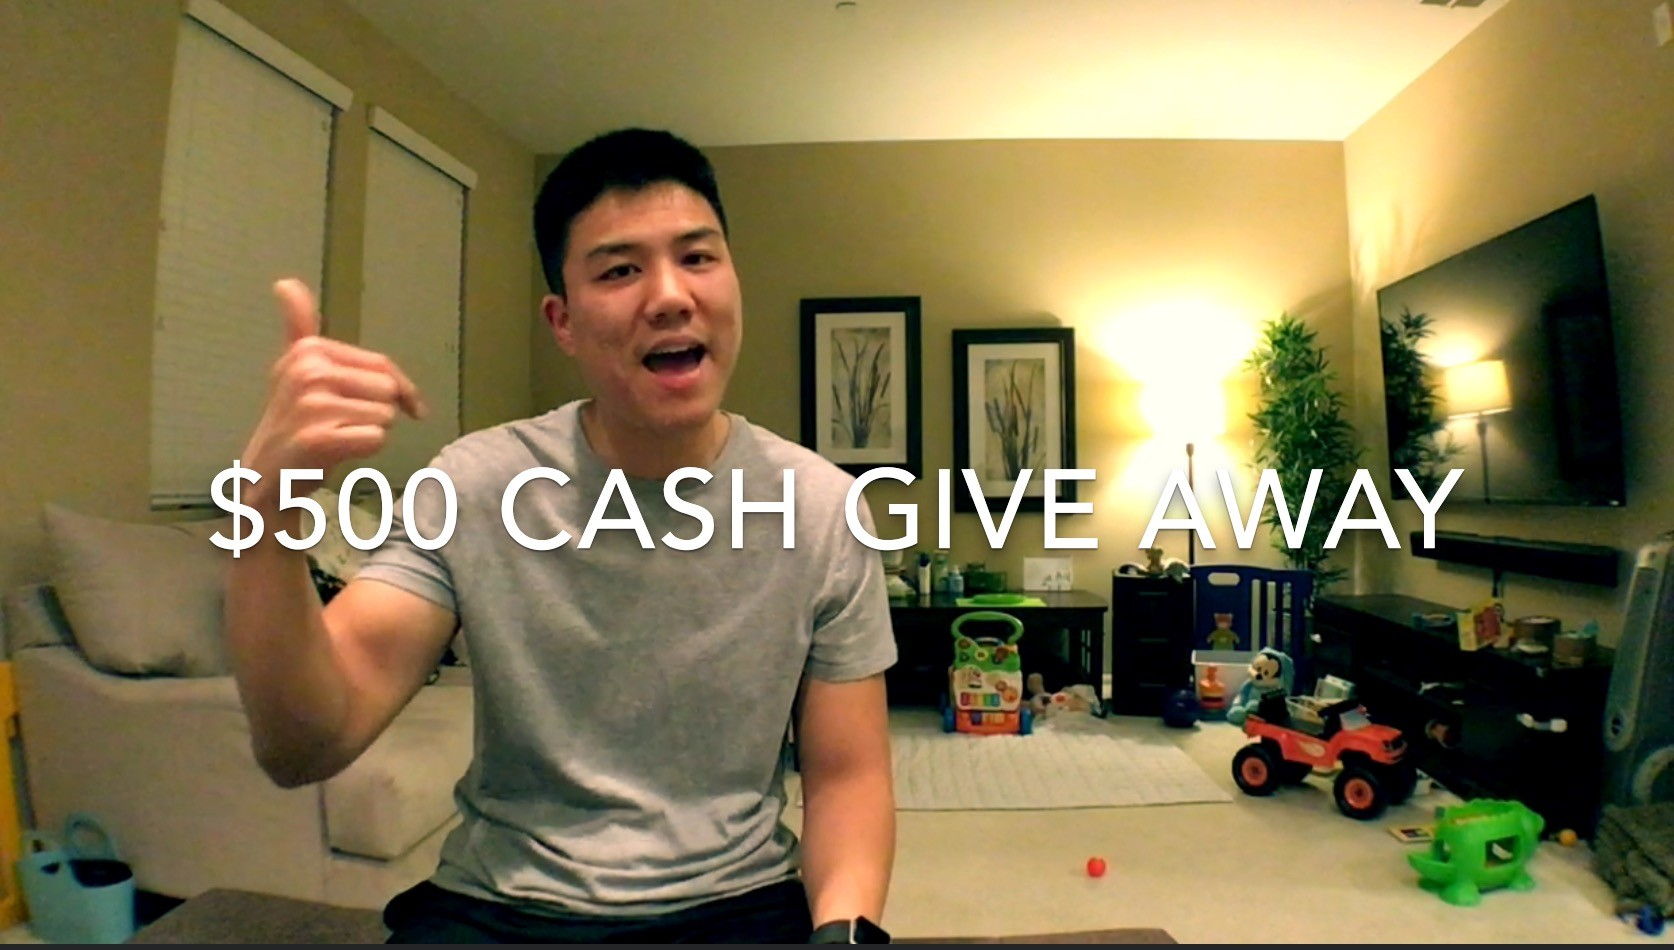 $500 Cash Give Away!! (UPDATE: Changed to 6/25 Sunday 10PM PST)